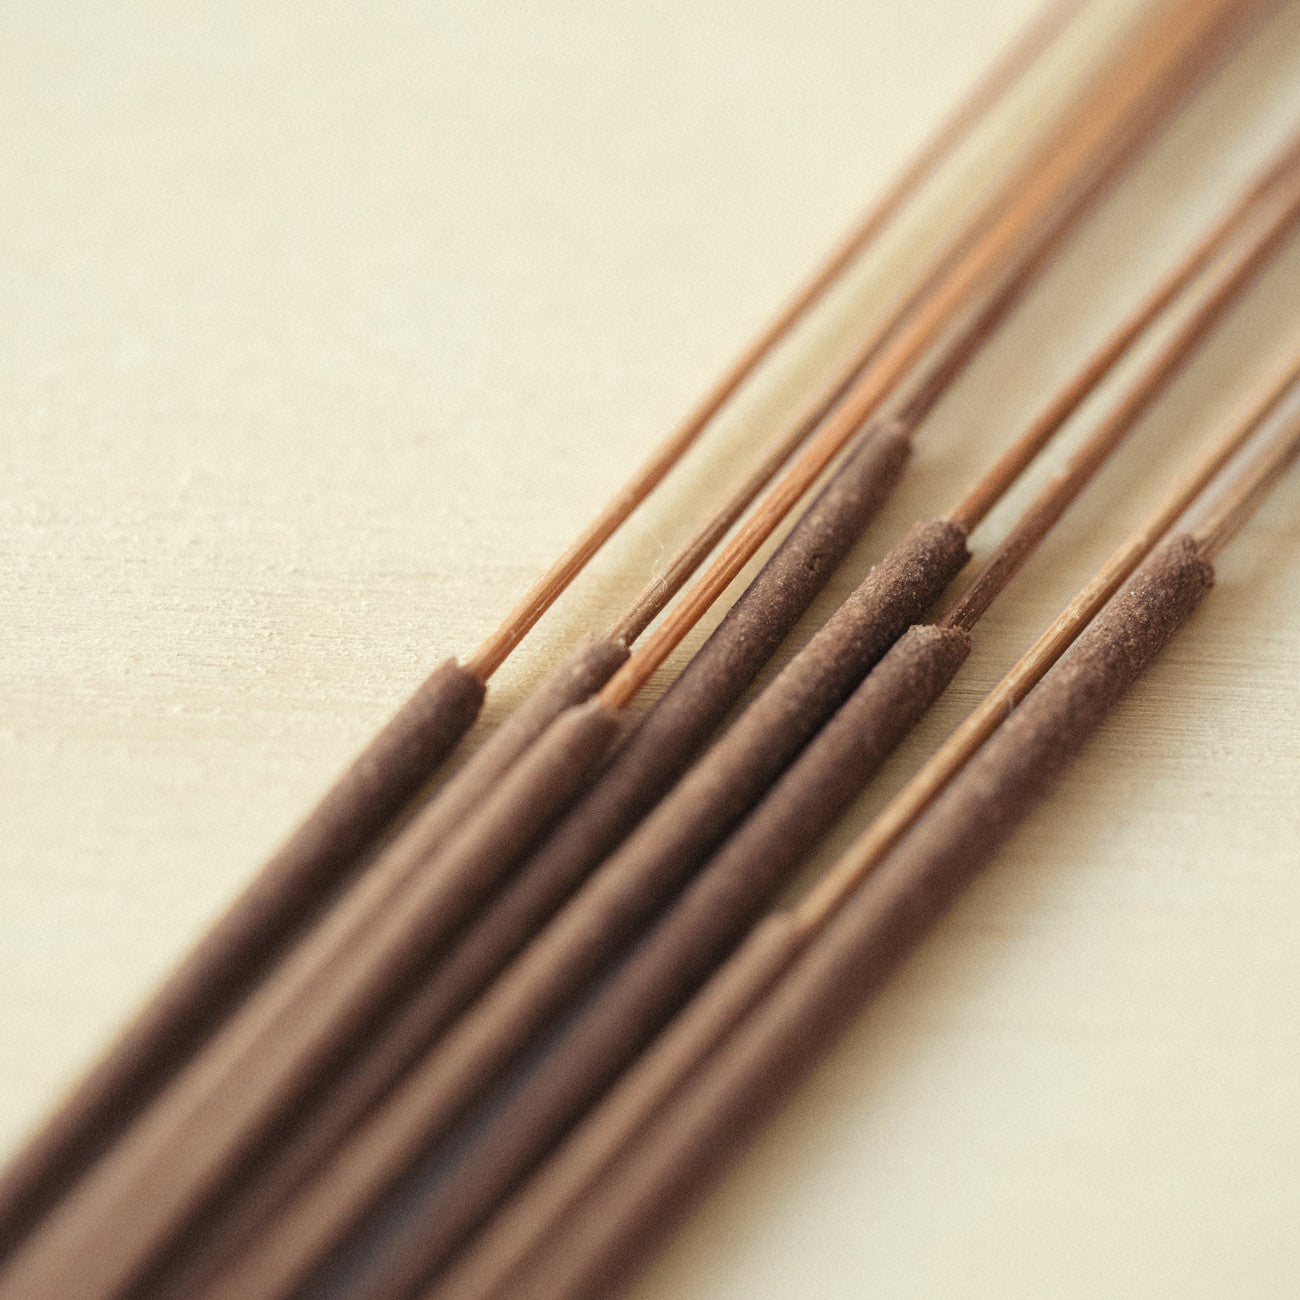 WSw 001 Stick Incense